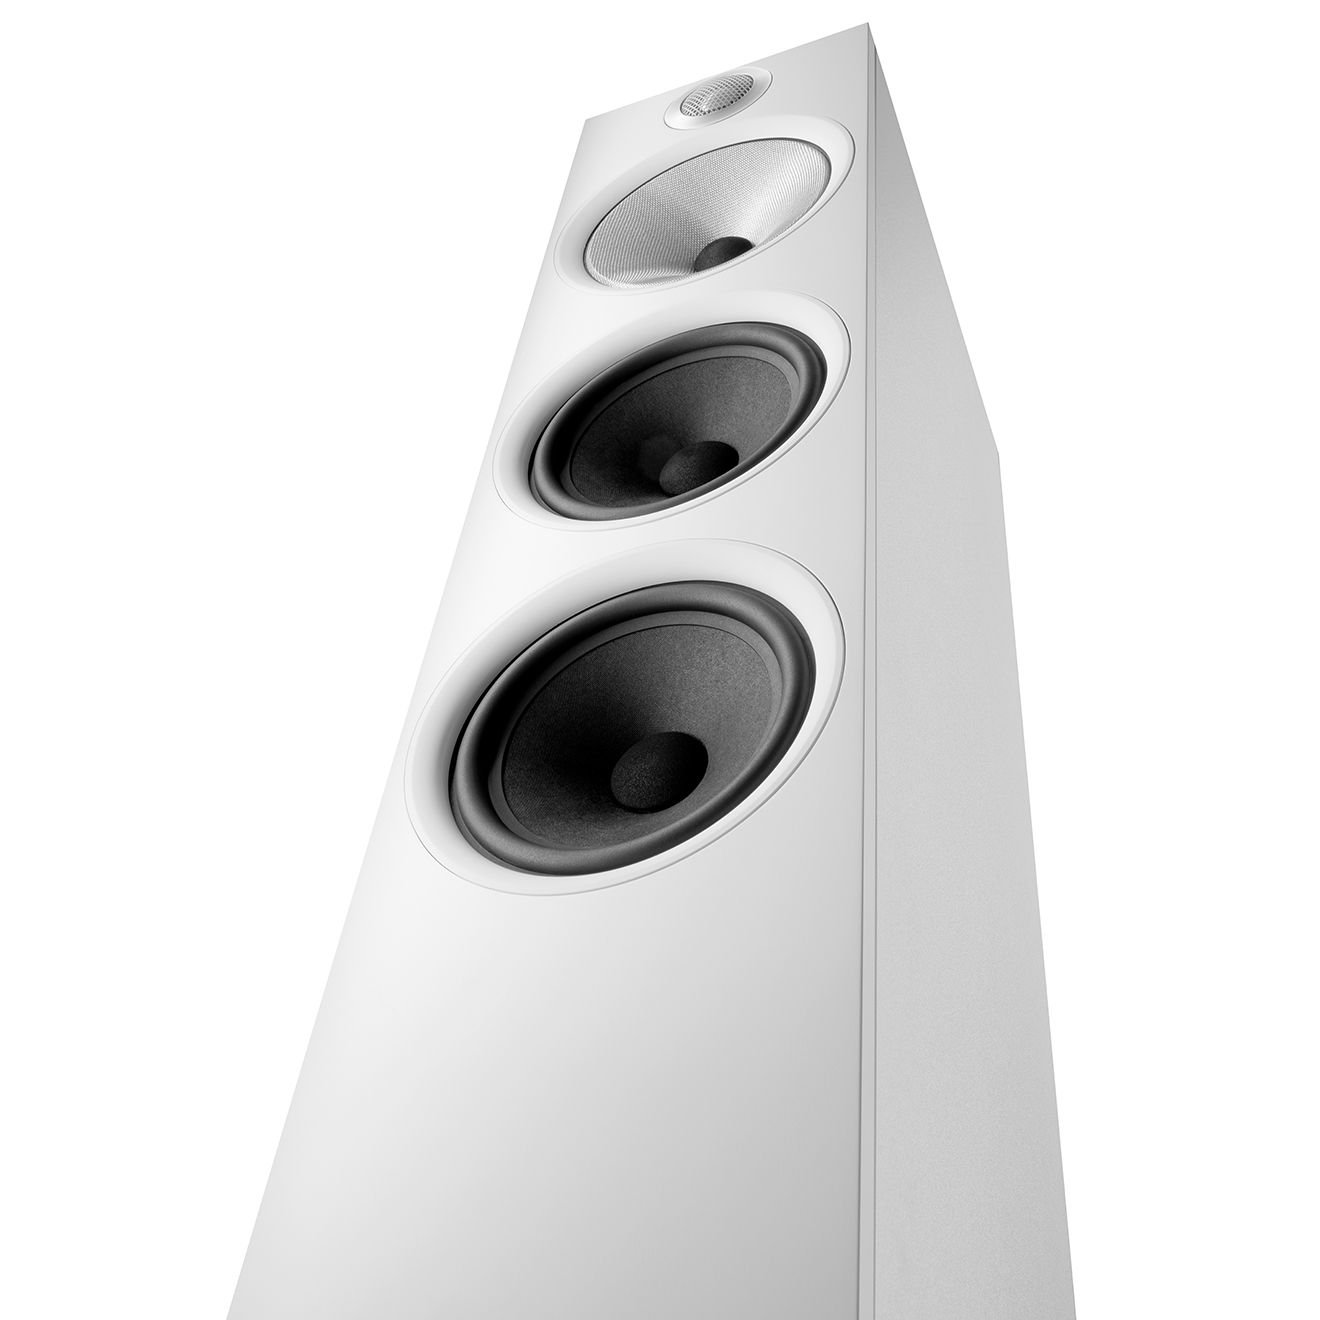 Whats The Best Loud Speaker under 20K for Music and Home Theater